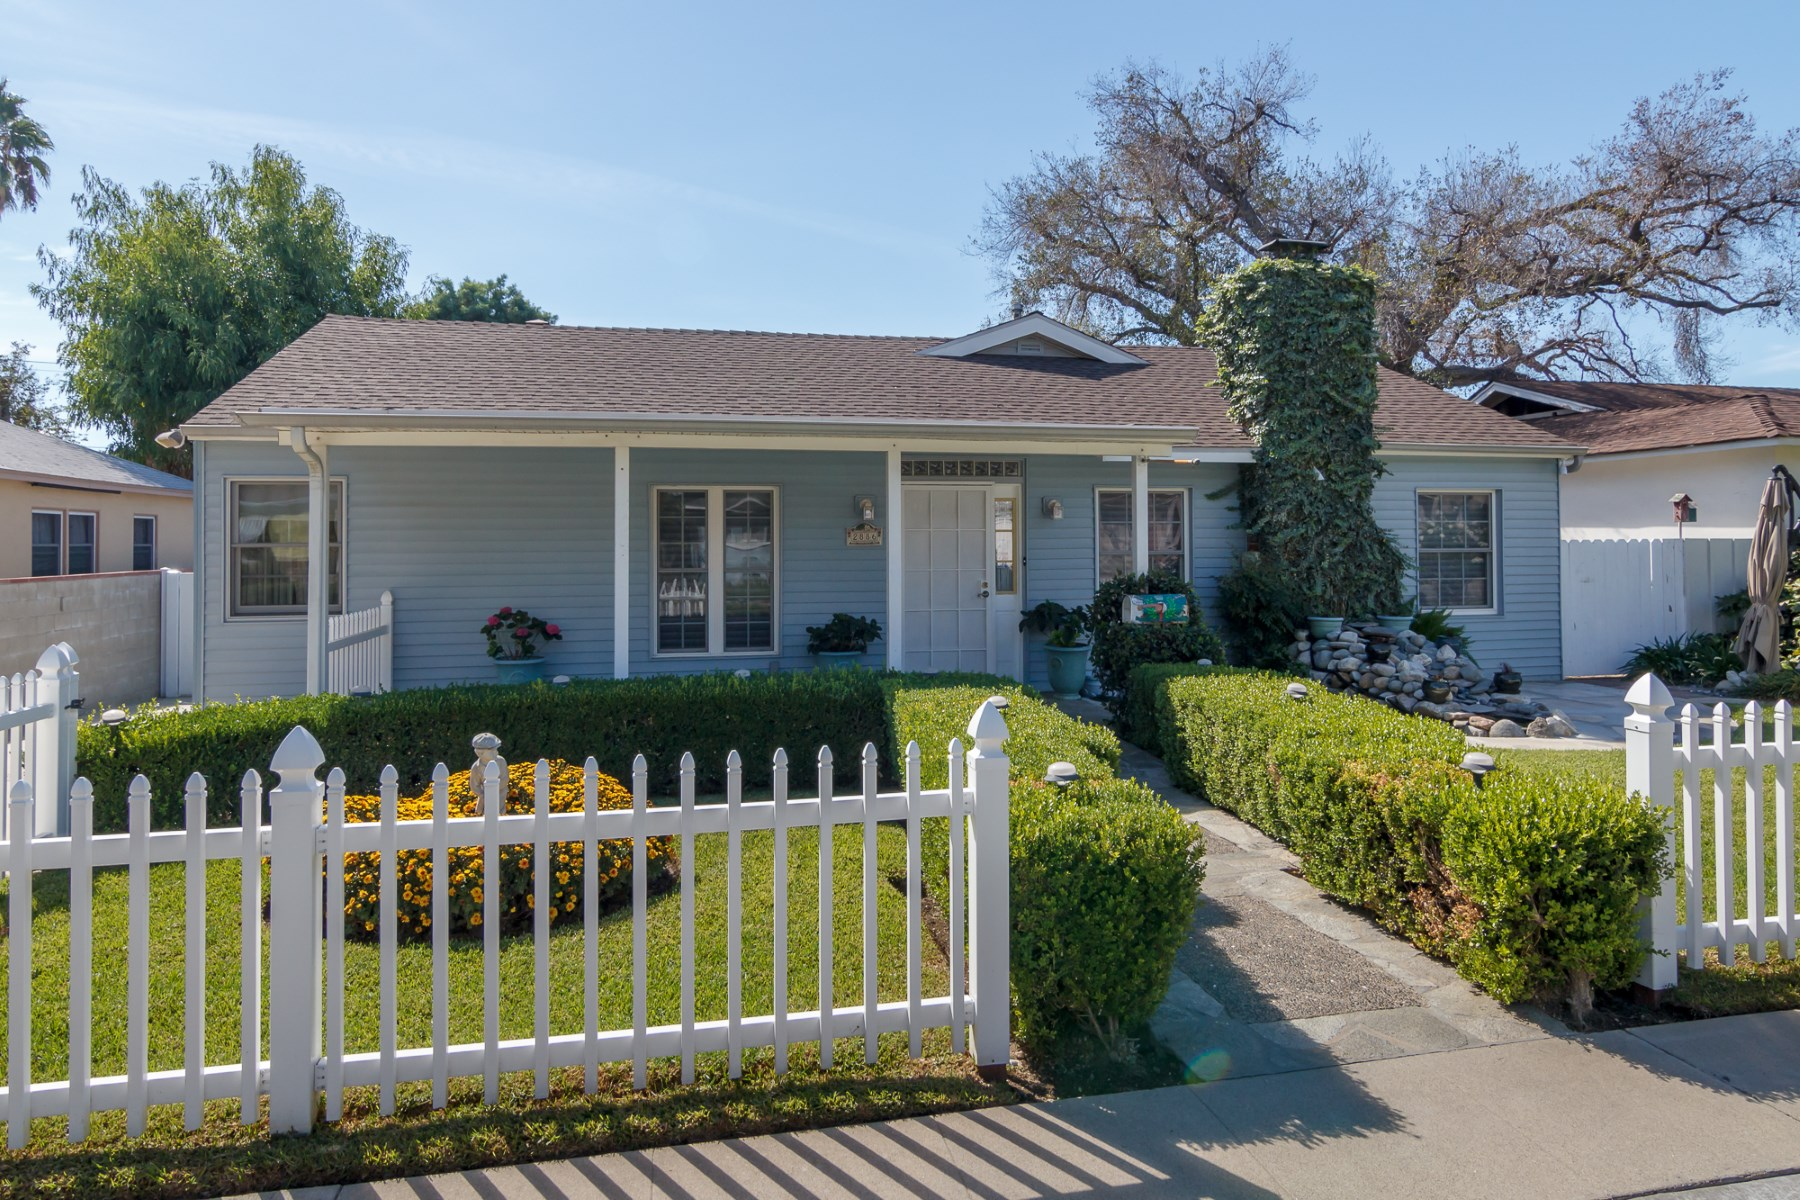 Property For Sale at Highly Desirable Residence in Great Pasadena Neighborhood